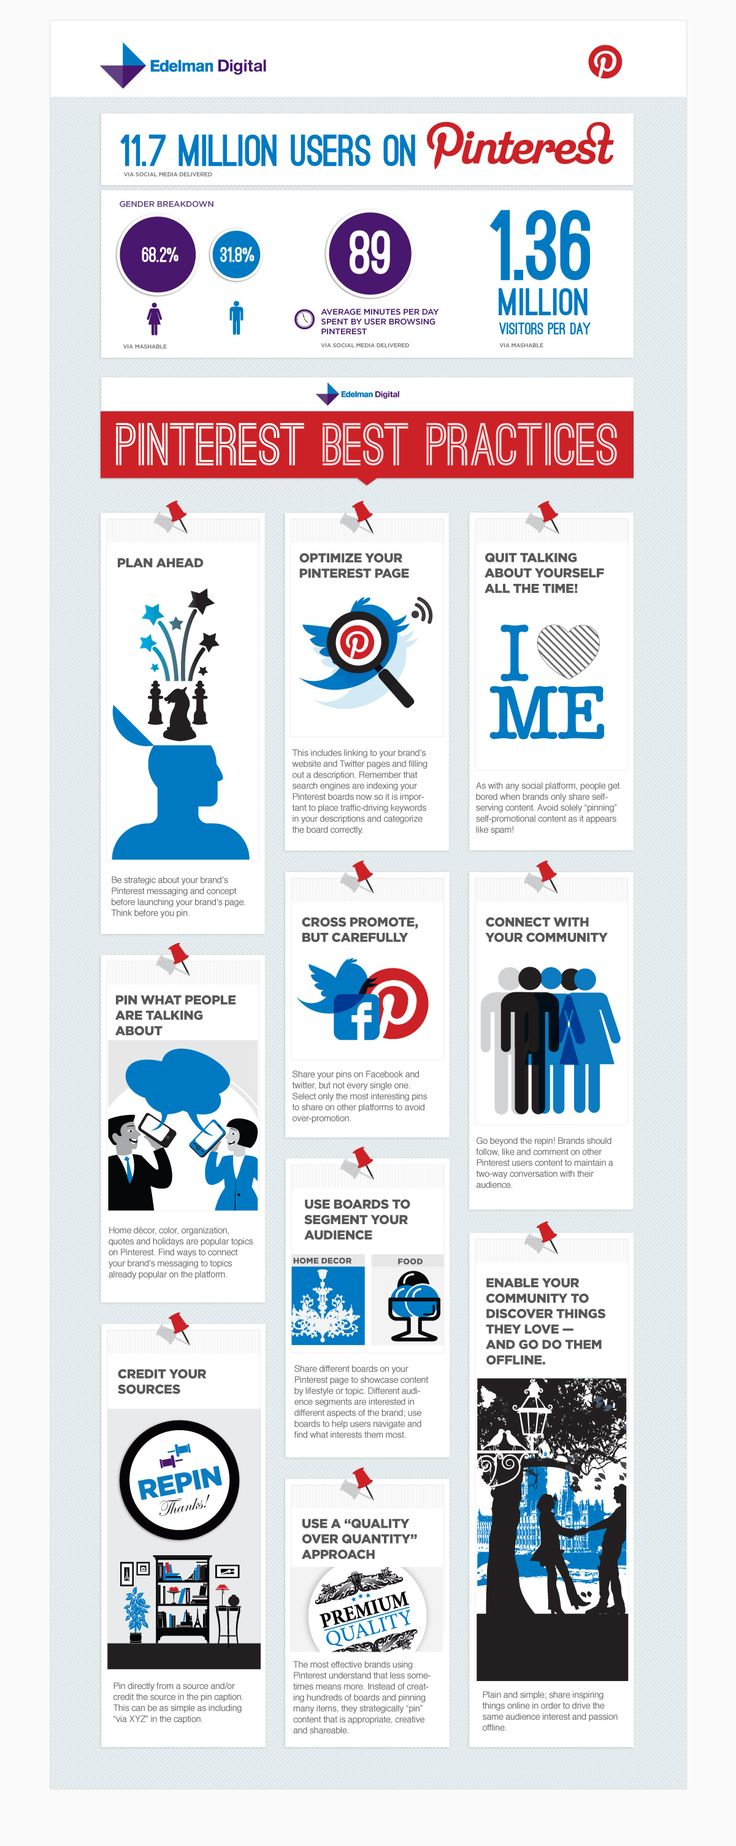 Pinterest Stats and Best Practices - Infographic: Social Network, Pinterest Pinfograph, Infographic Socialmedia, Social Media, Practice, Pinterest Infographic, Media Marketing, Media Infographic, Business